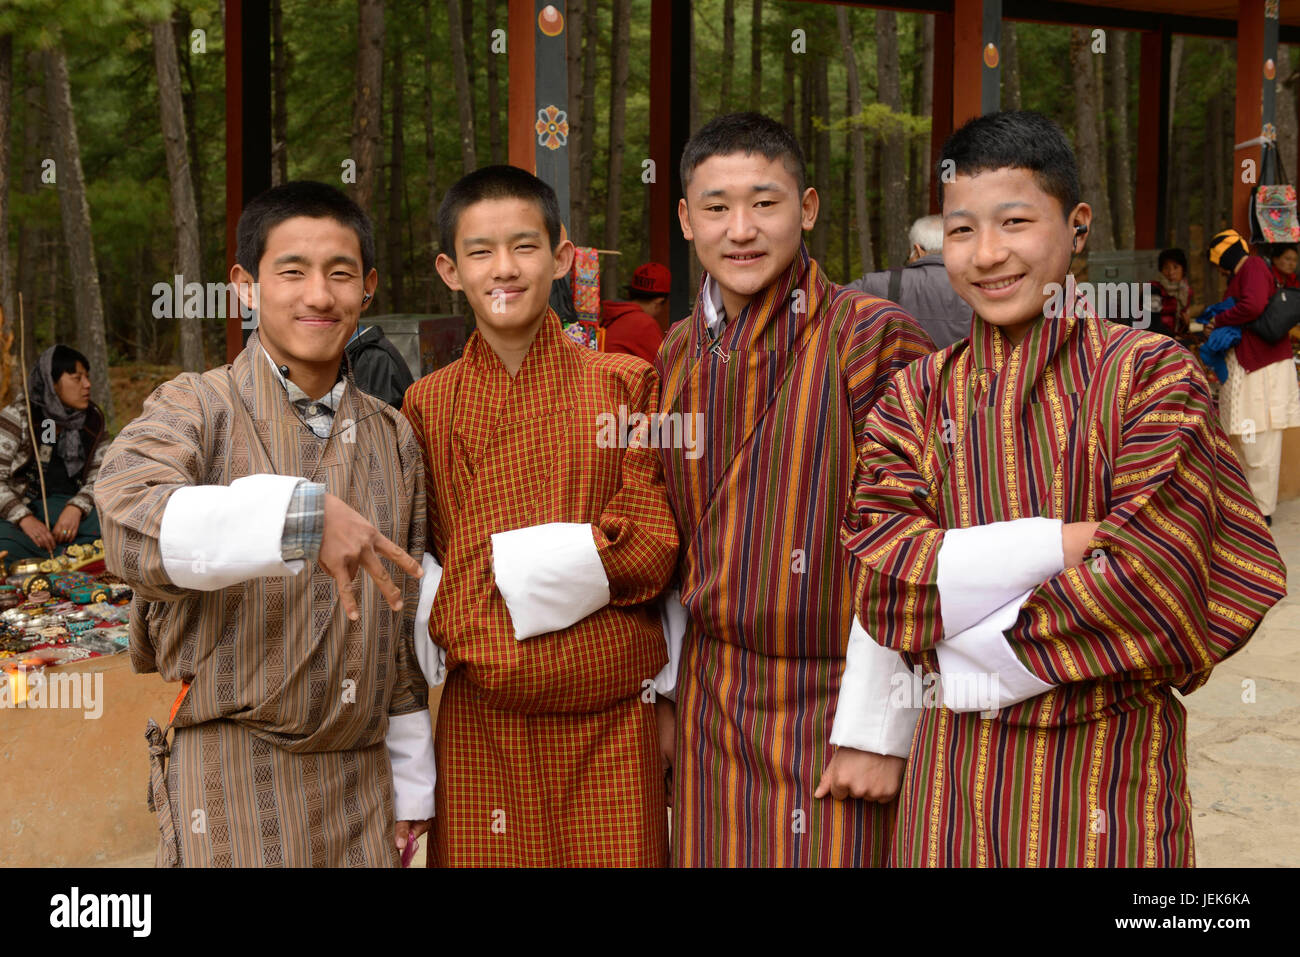 People at monastery, Thimphu, Bhutan, asia - Stock Image